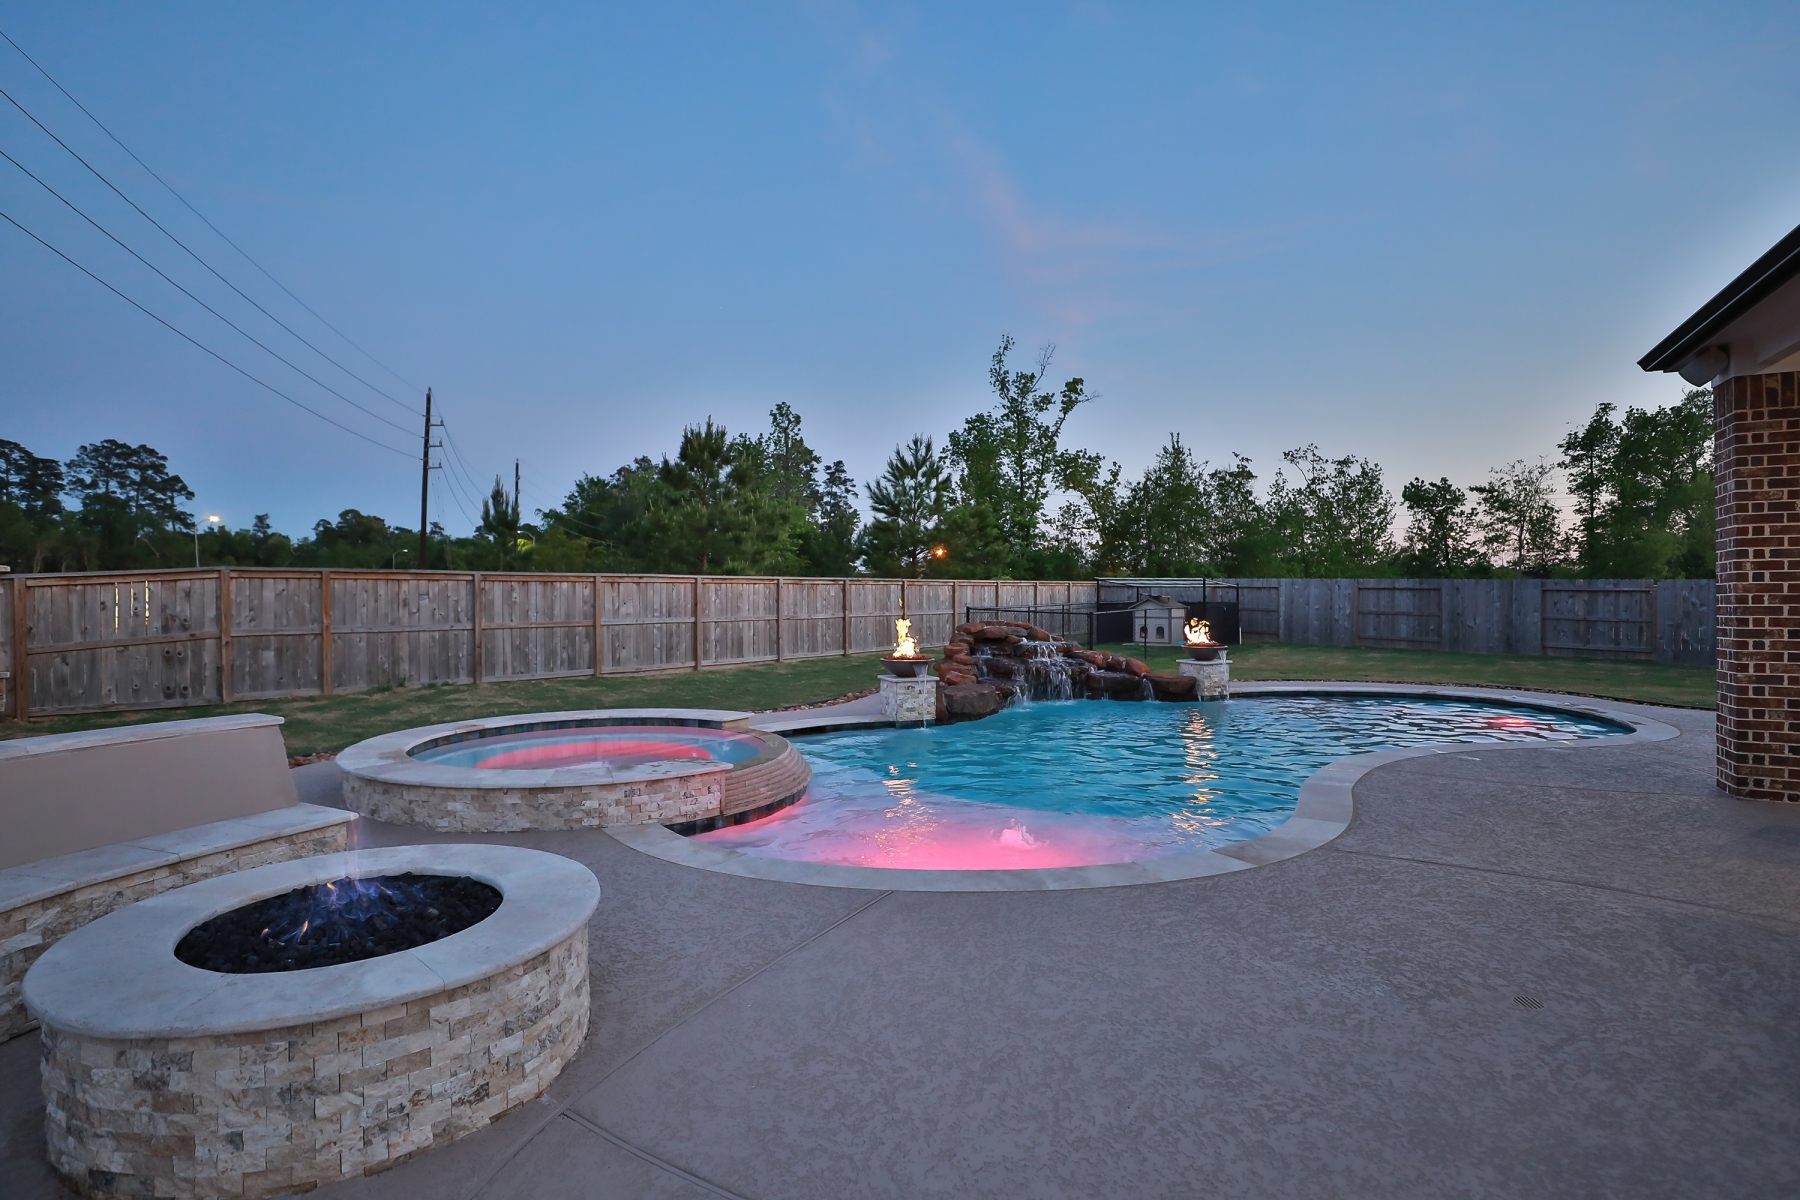 Freeform Pool with Rock Waterfall, Custom Lighting, Fire Bowls & Fire Pit Seating Area